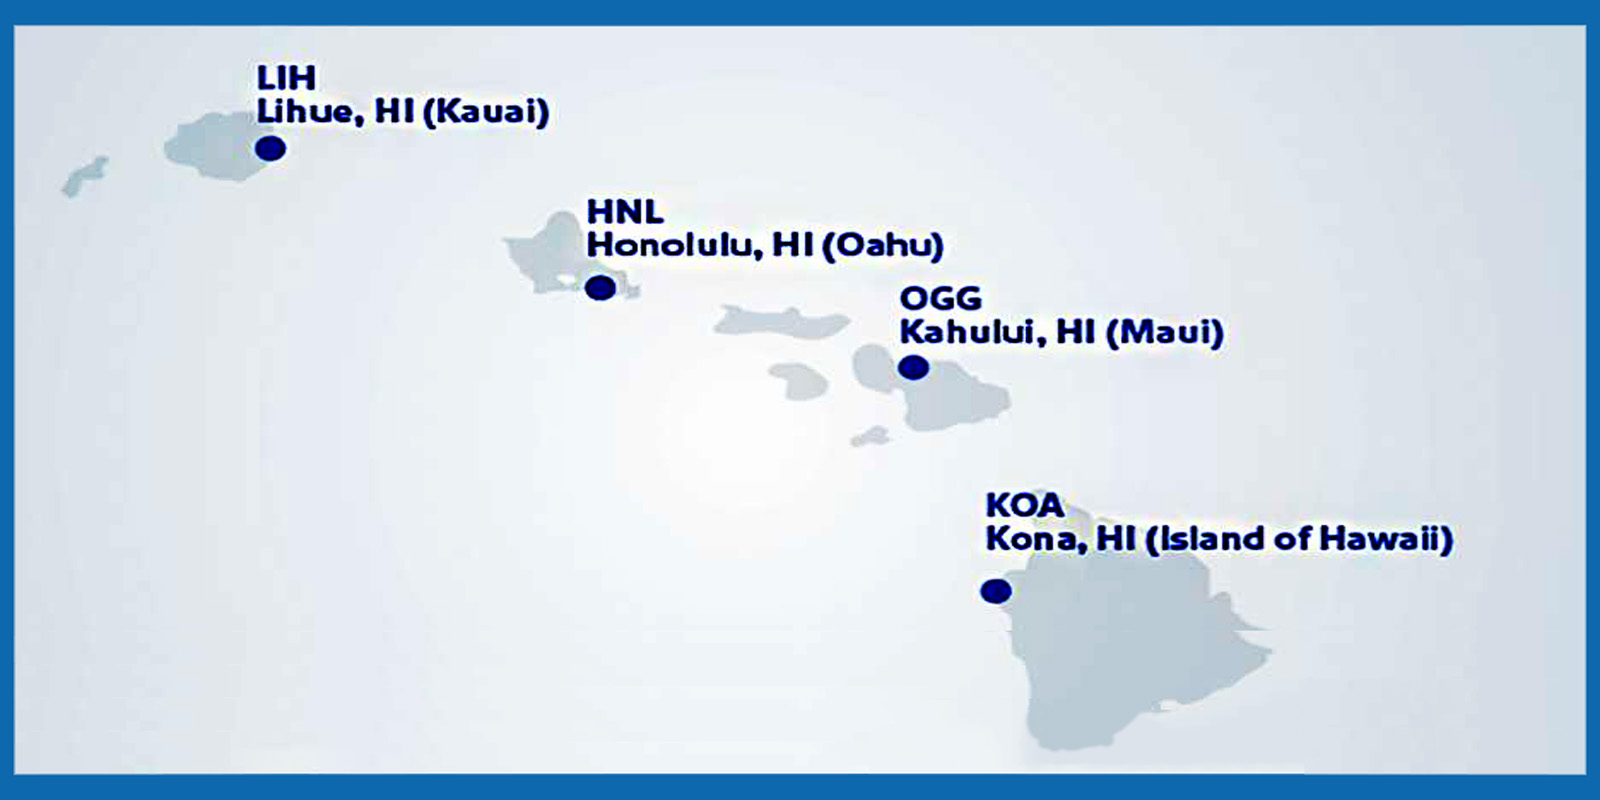 southwest will initially serve these four airports in hawaii